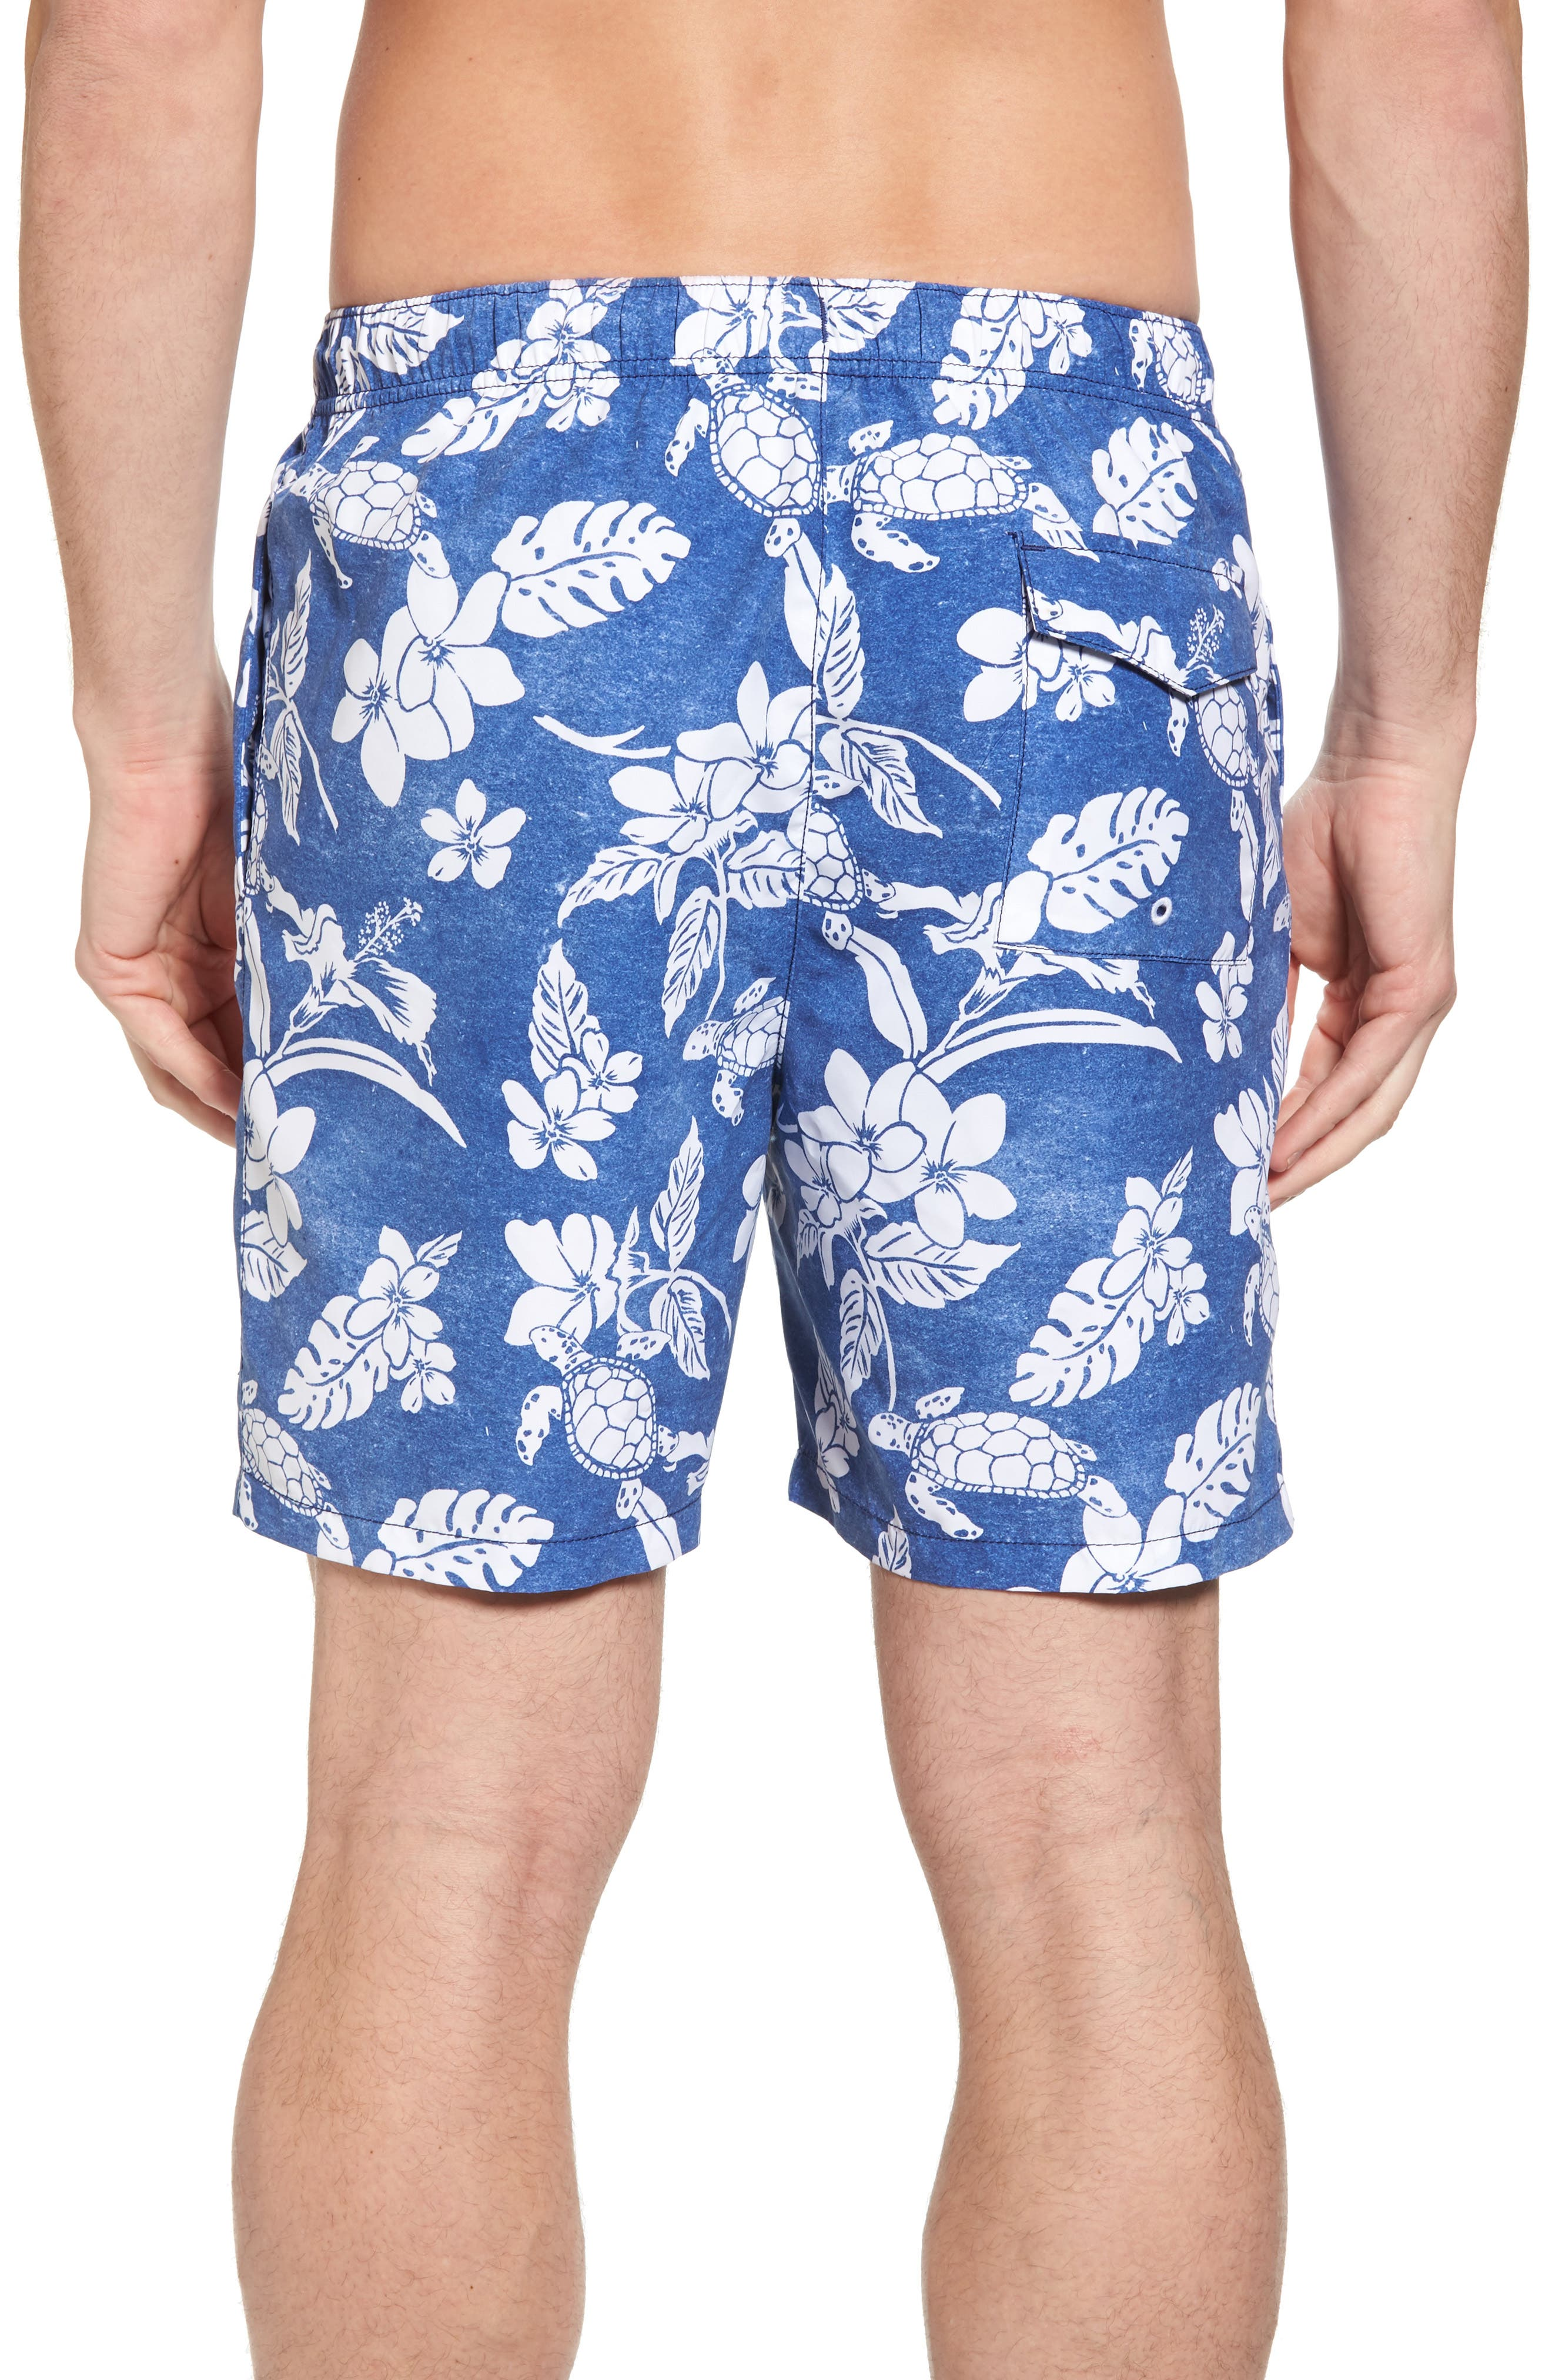 Naples Turtle Beach Swim Trunks,                             Alternate thumbnail 2, color,                             Kingdom Blue